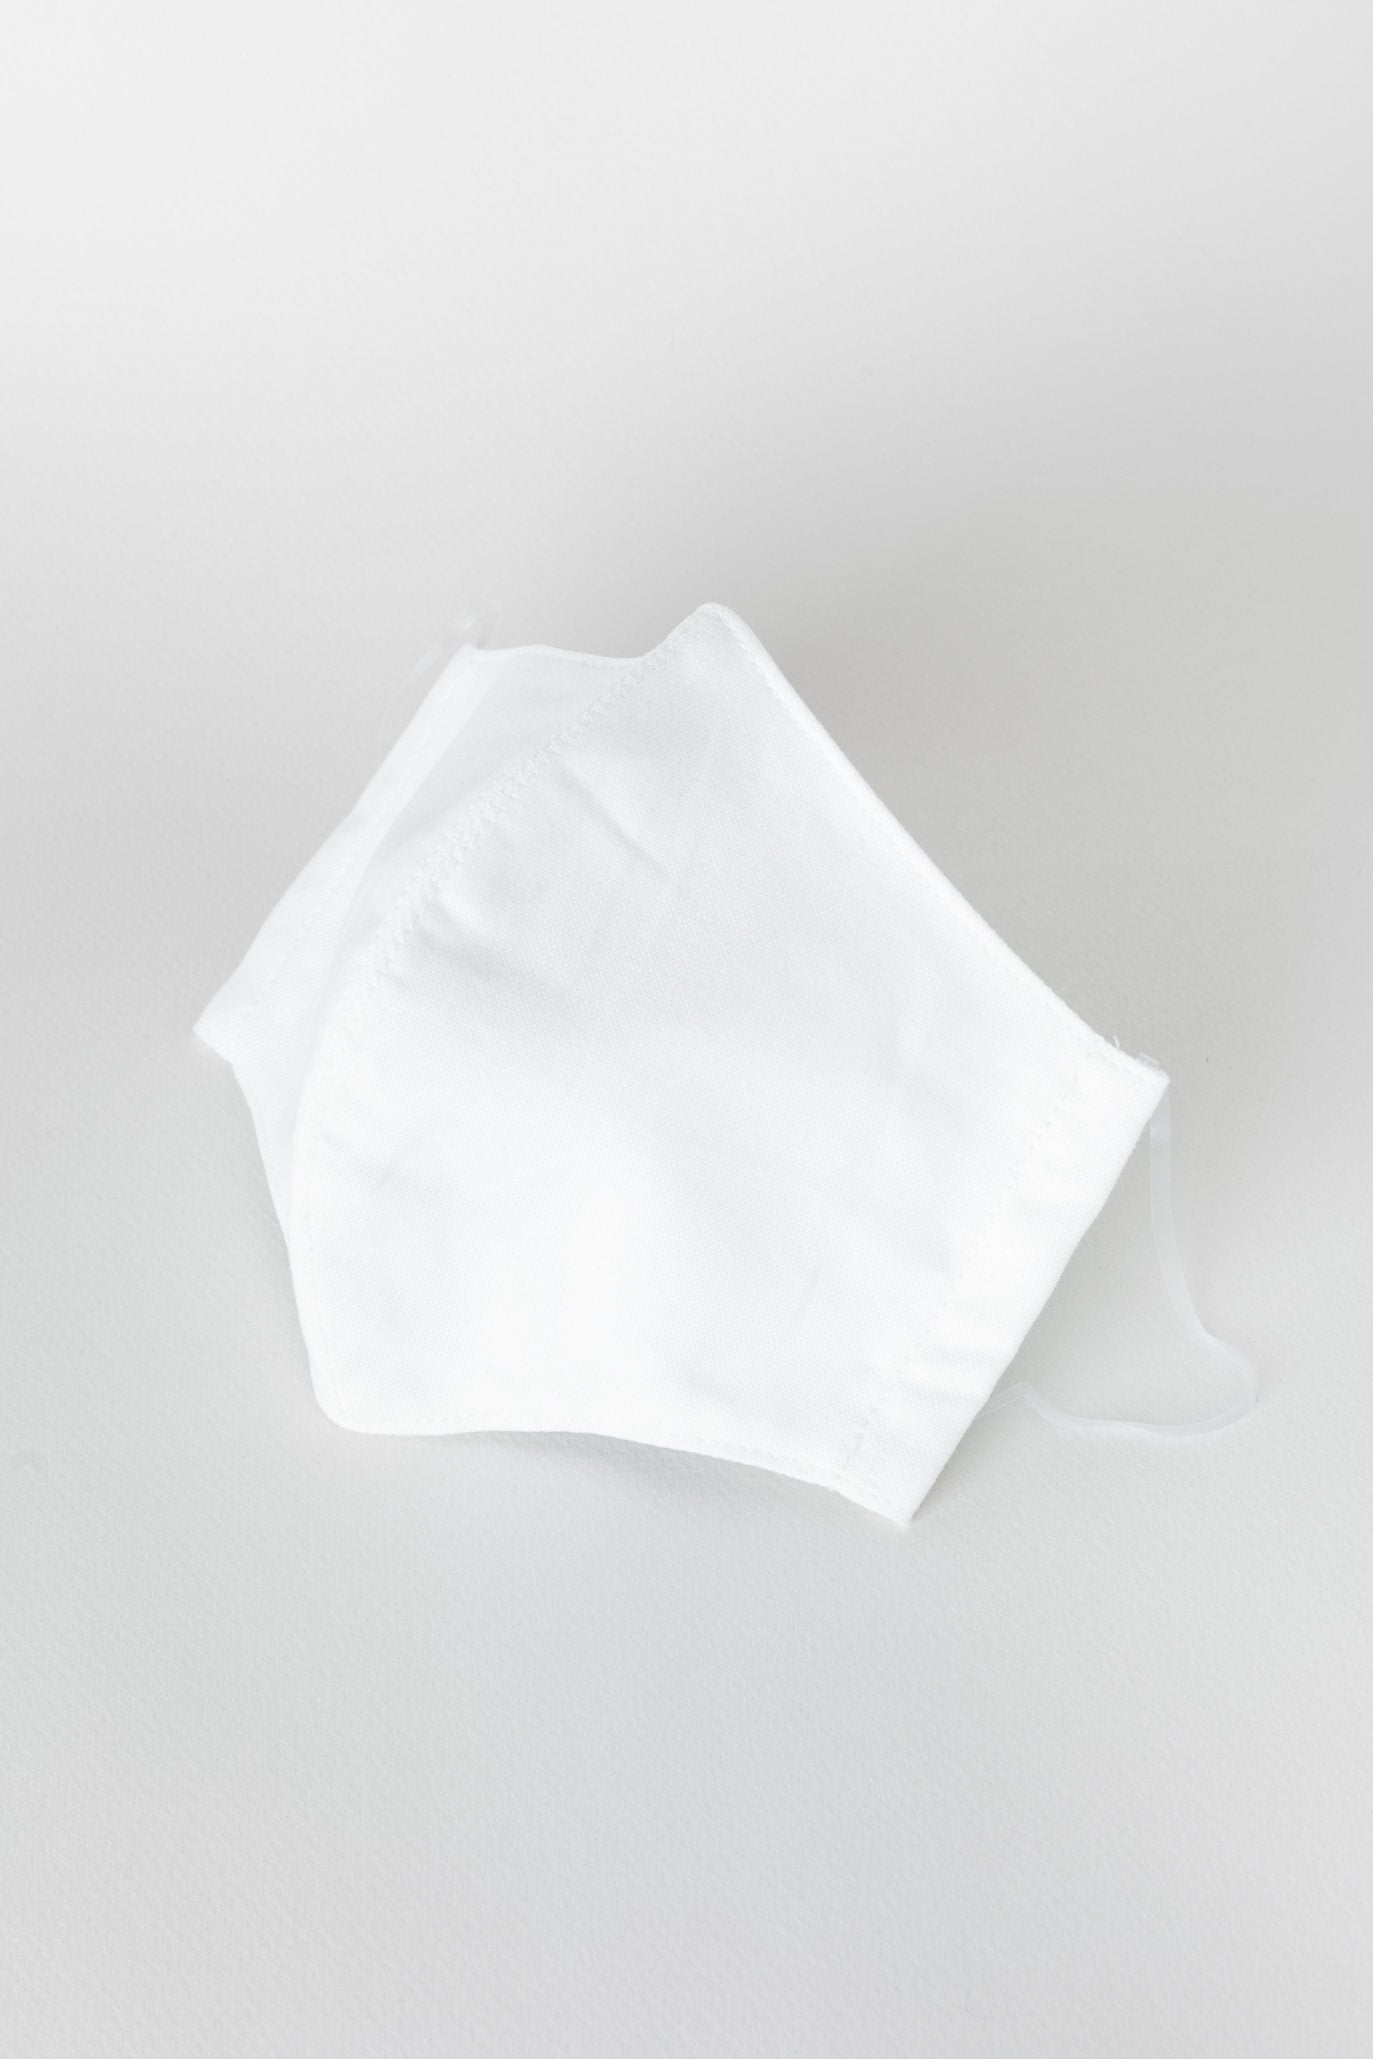 Japanese Oxford Face Mask in White 01